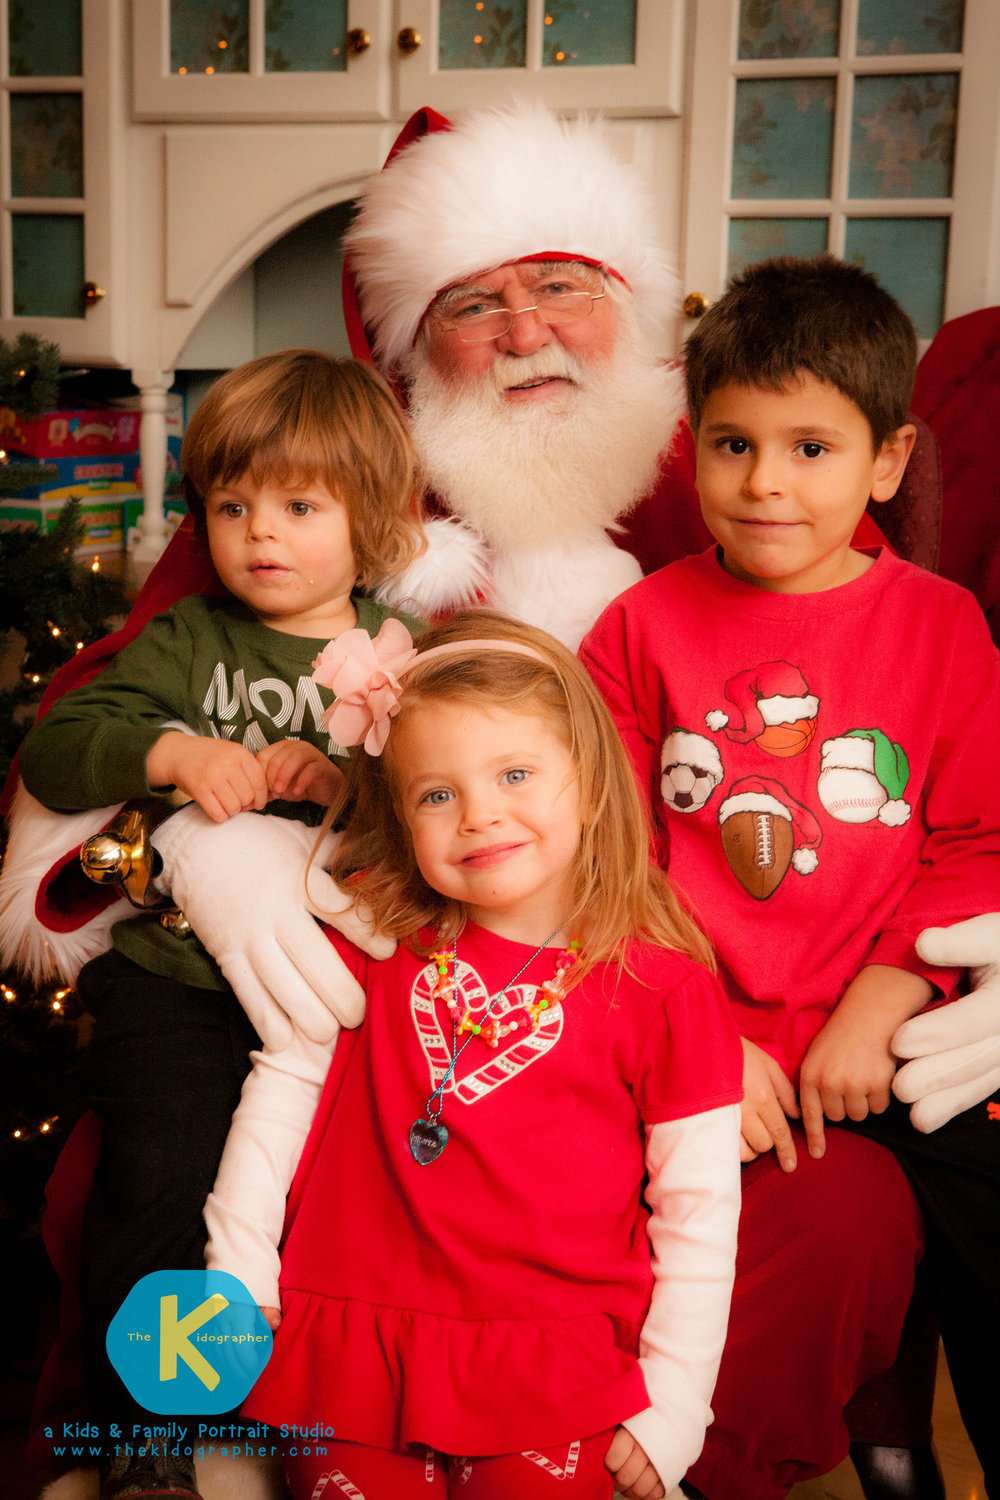 THE_KIDOGRAPHER_PHOTOS_WITH_SANTA-43.jpg